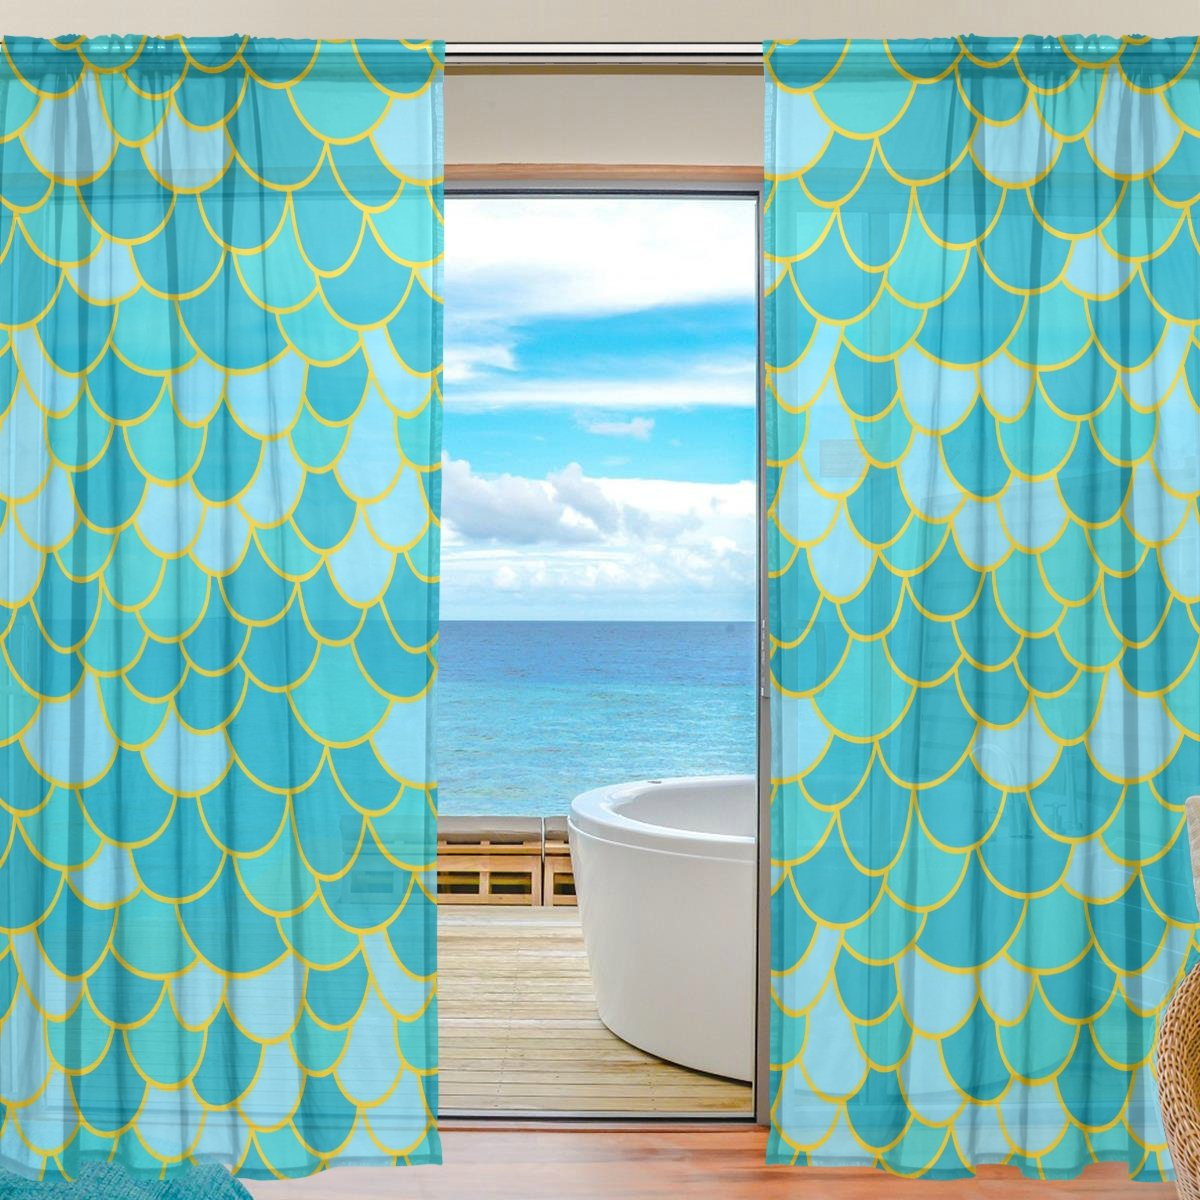 KALENDS Sheer Curtain Set for Living Room Bedroom Rod Pocket Tulle Fabric Ruffle White Window Treatment 52 W x 84 L 2 Panels